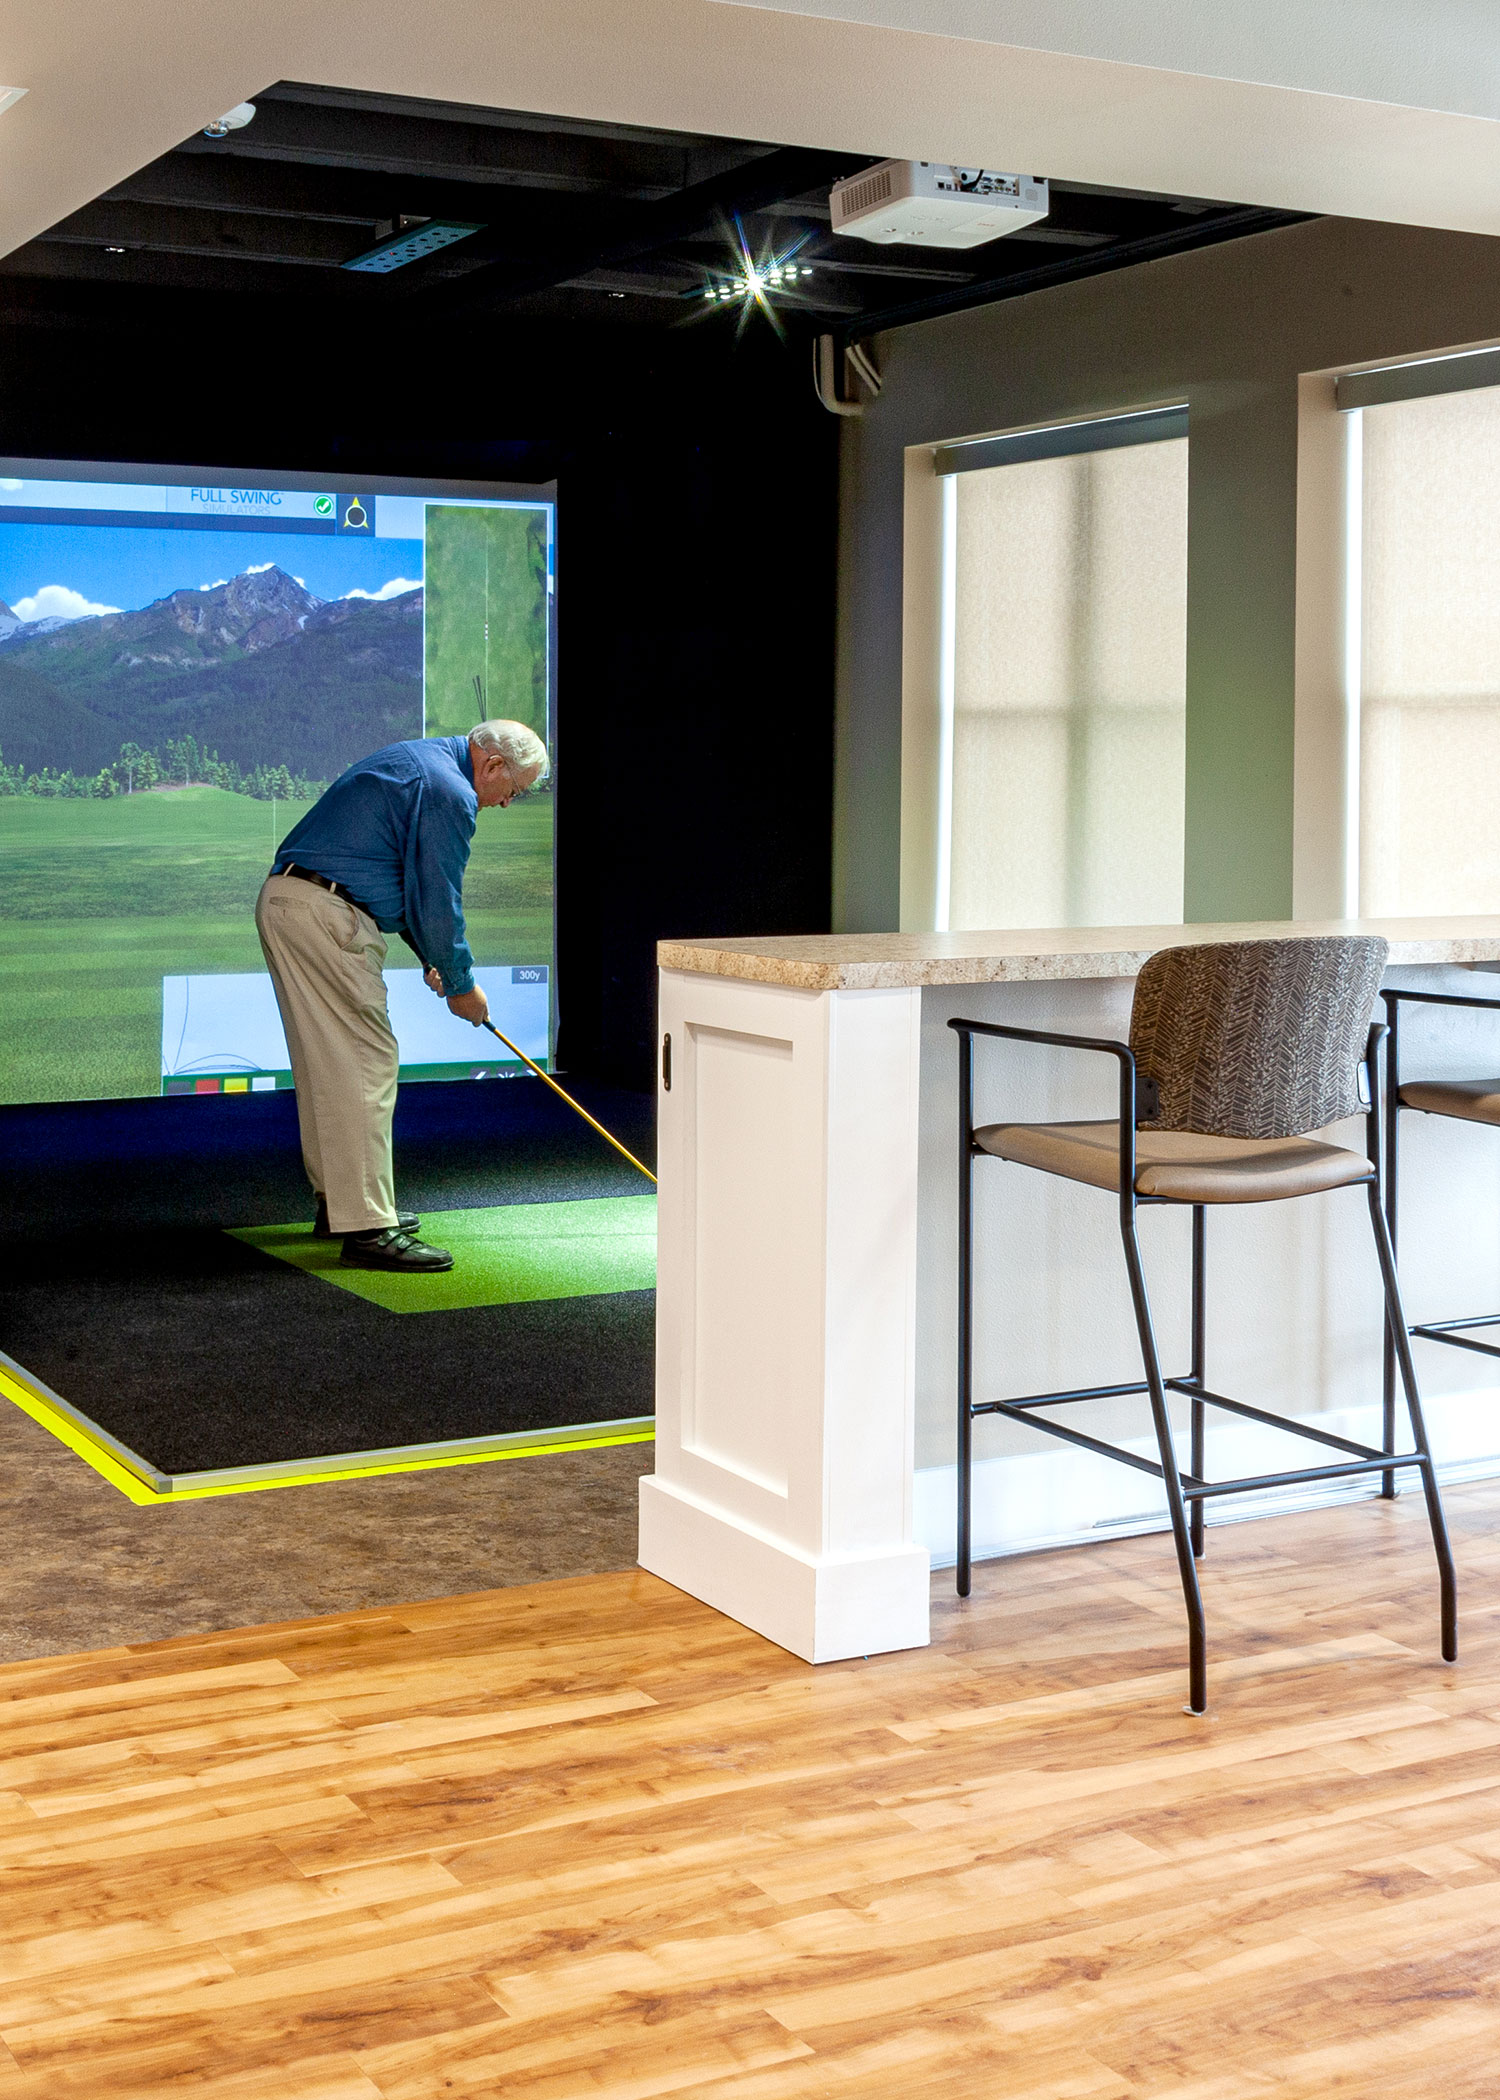 Male resident golfing at the indoor golf simulator